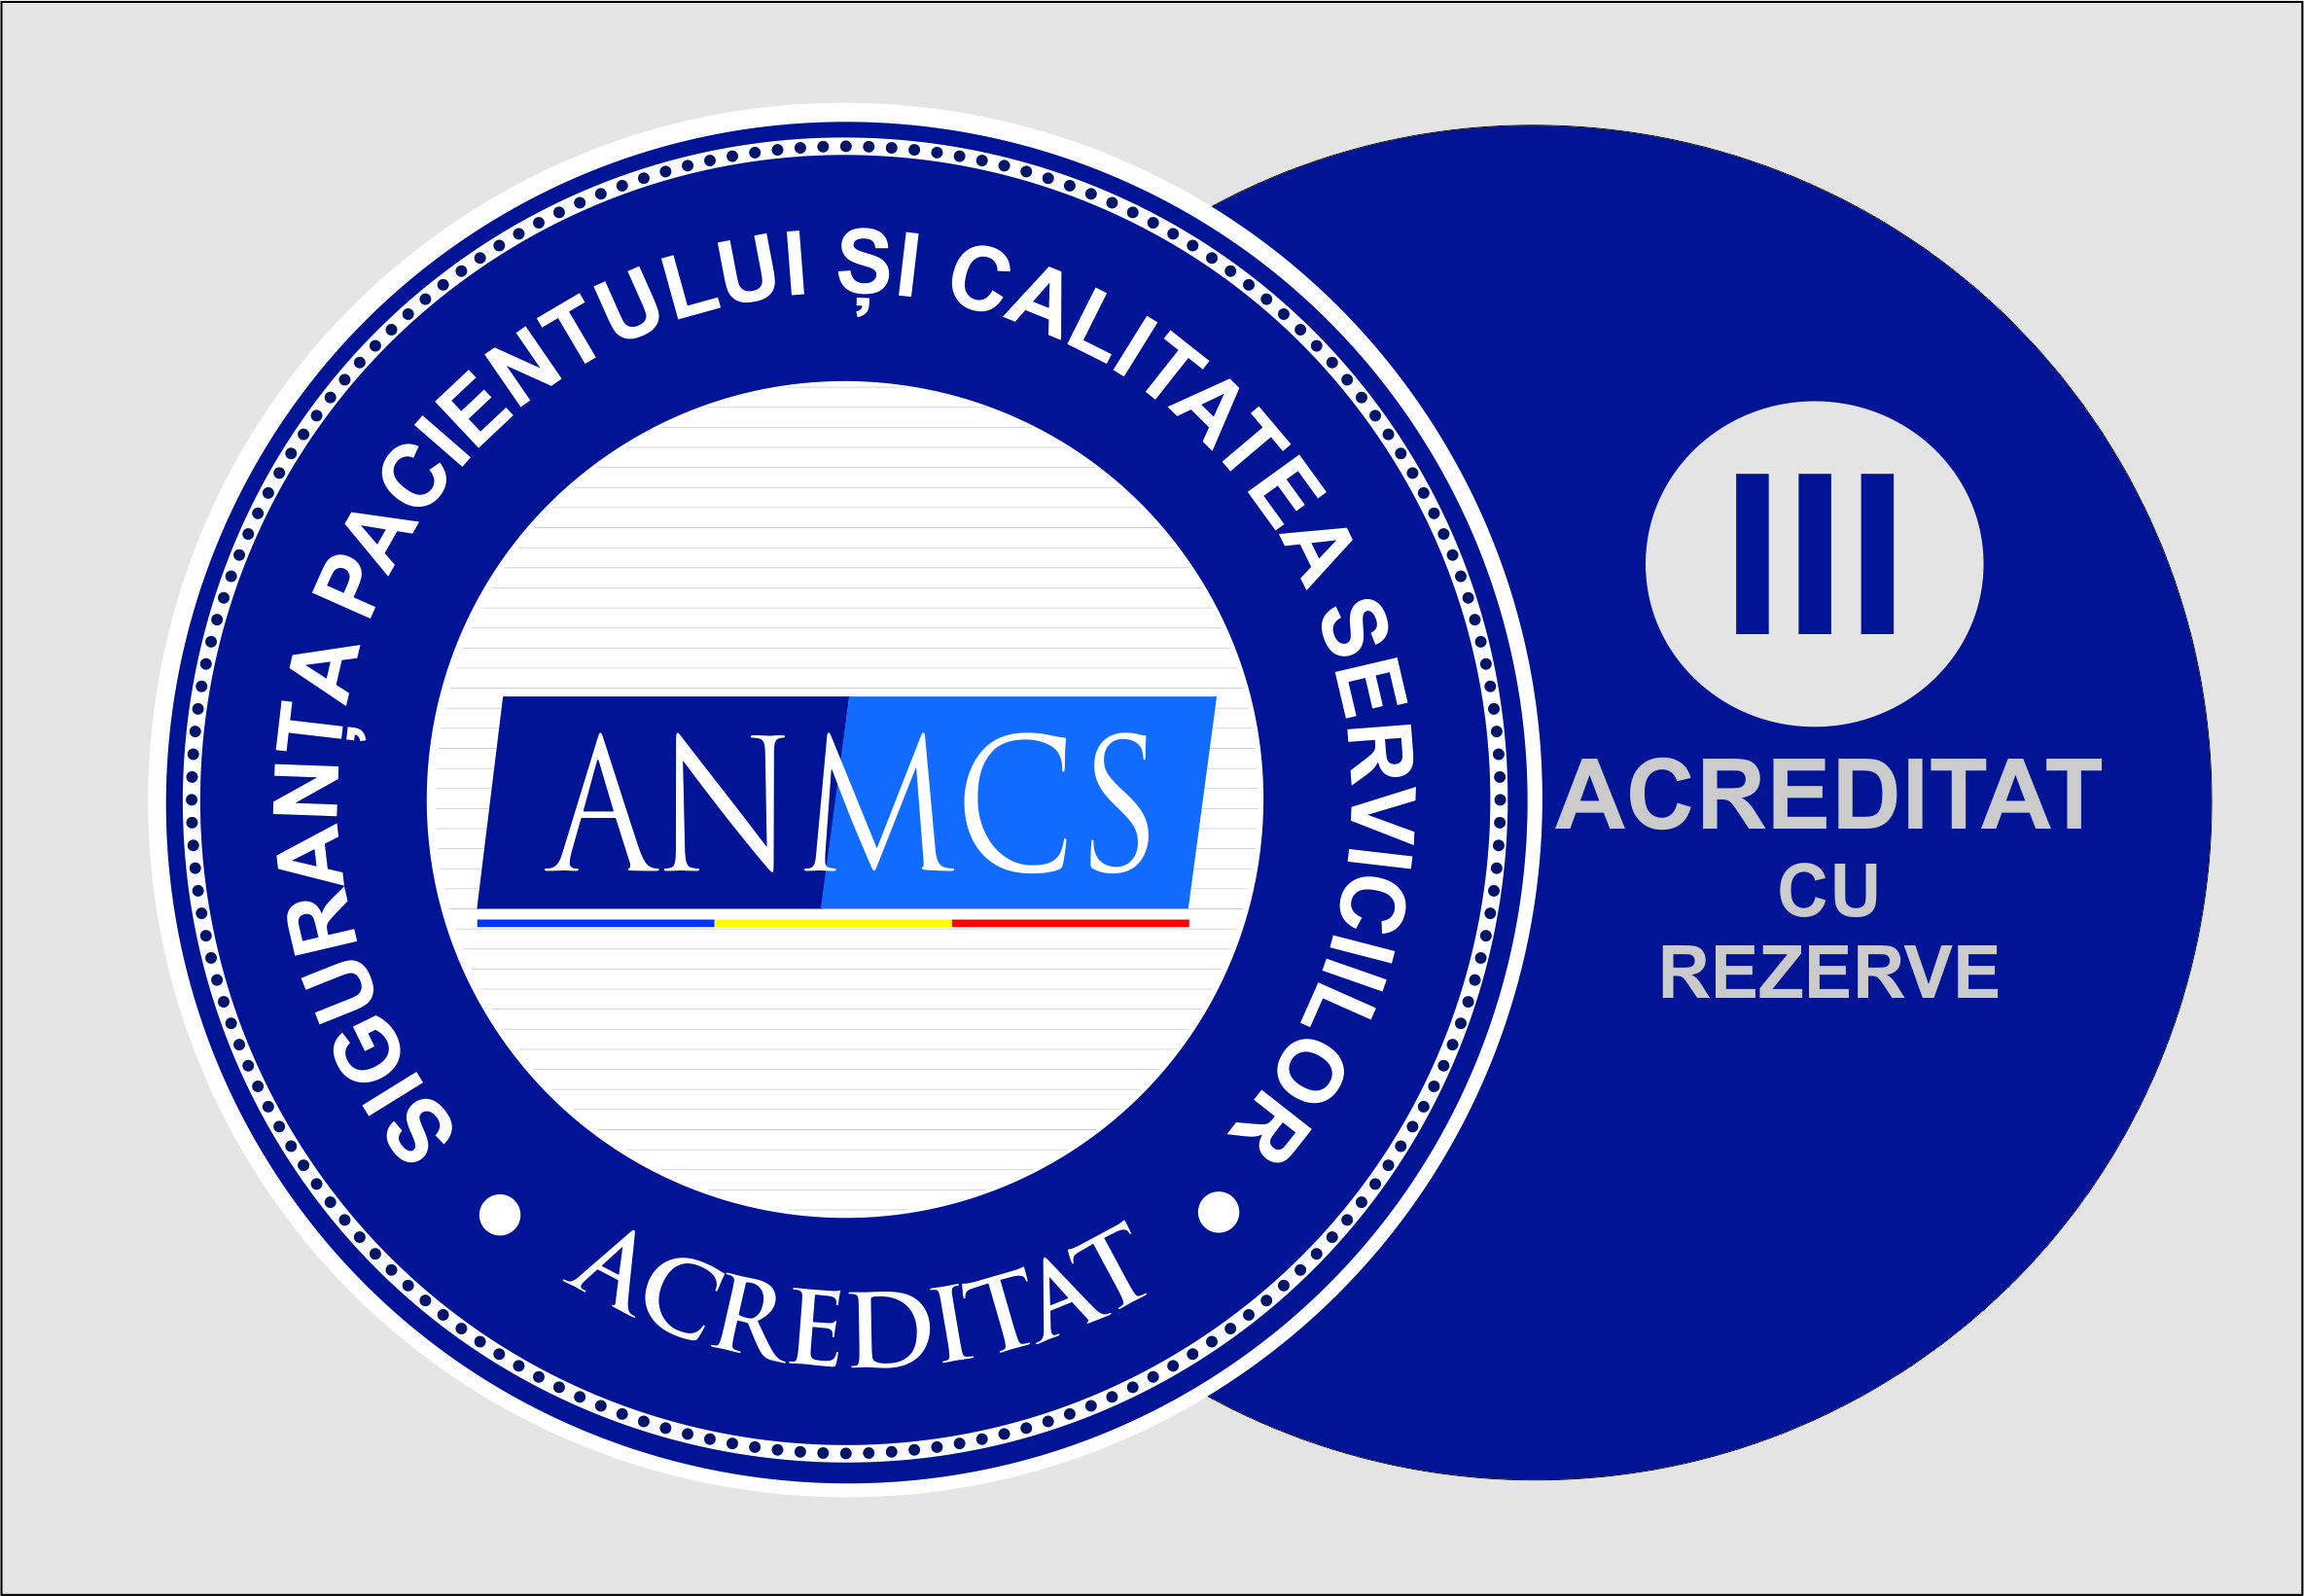 logo-anmcs-categorie-III-acreditare